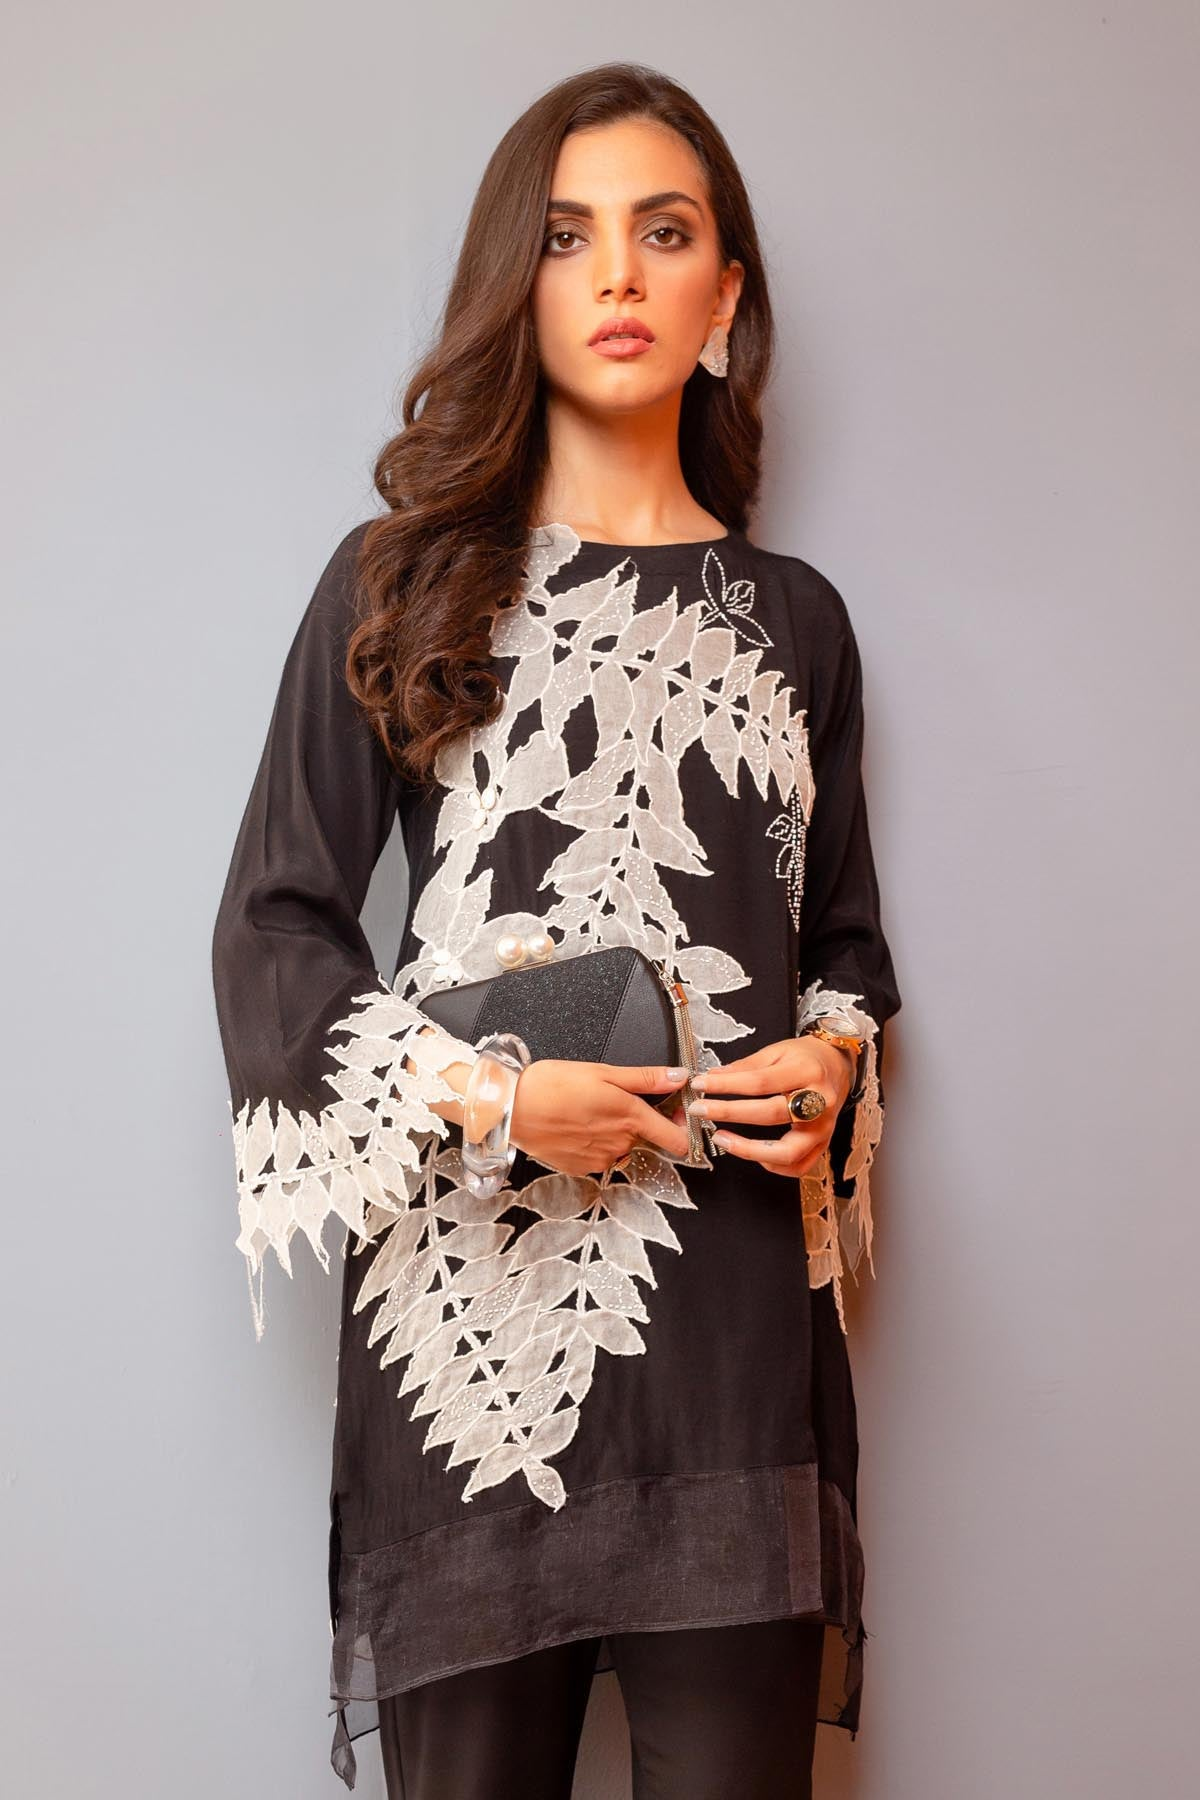 By The Way Clothing Lahore Pakistan